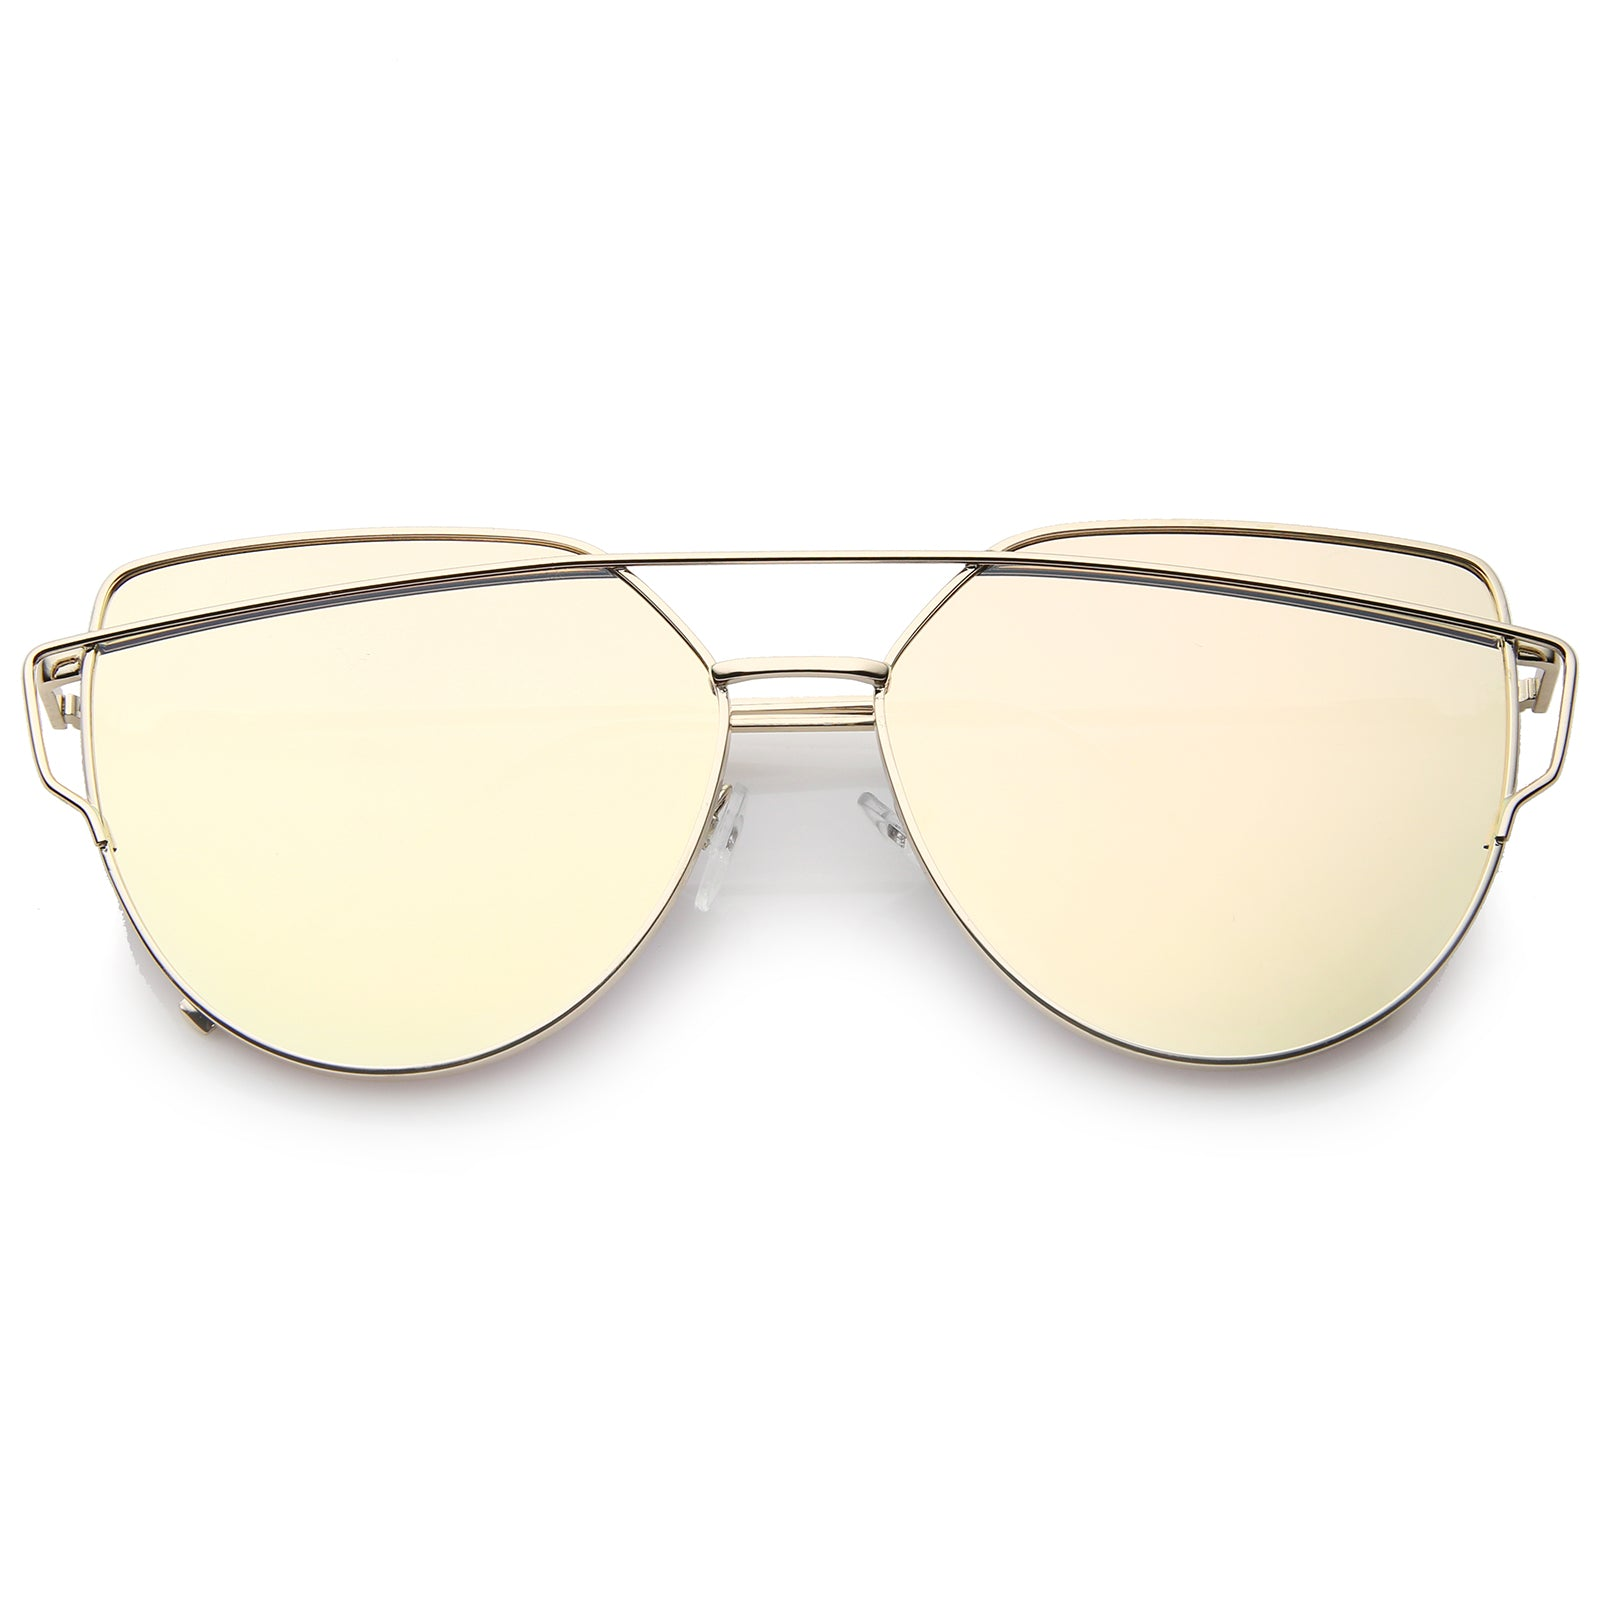 Oversize Metal Frame Thin Temple Color Mirror Flat Lens Aviator Sunglasses 62mm - sunglass.la - 21